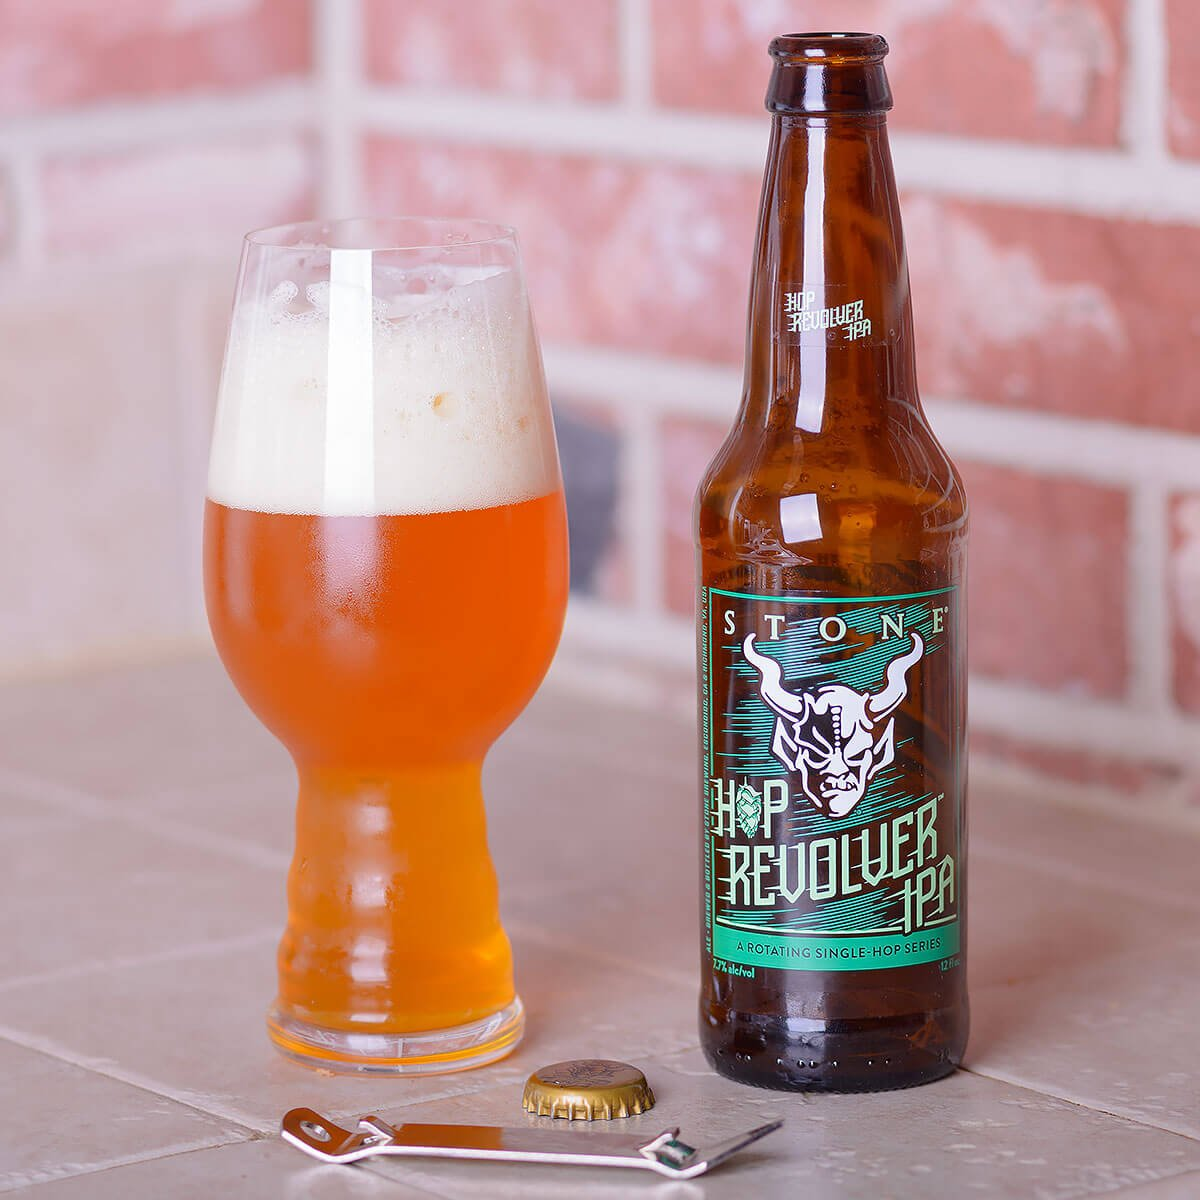 Stone Hop Revolver IPA, an American IPA by Stone Brewing